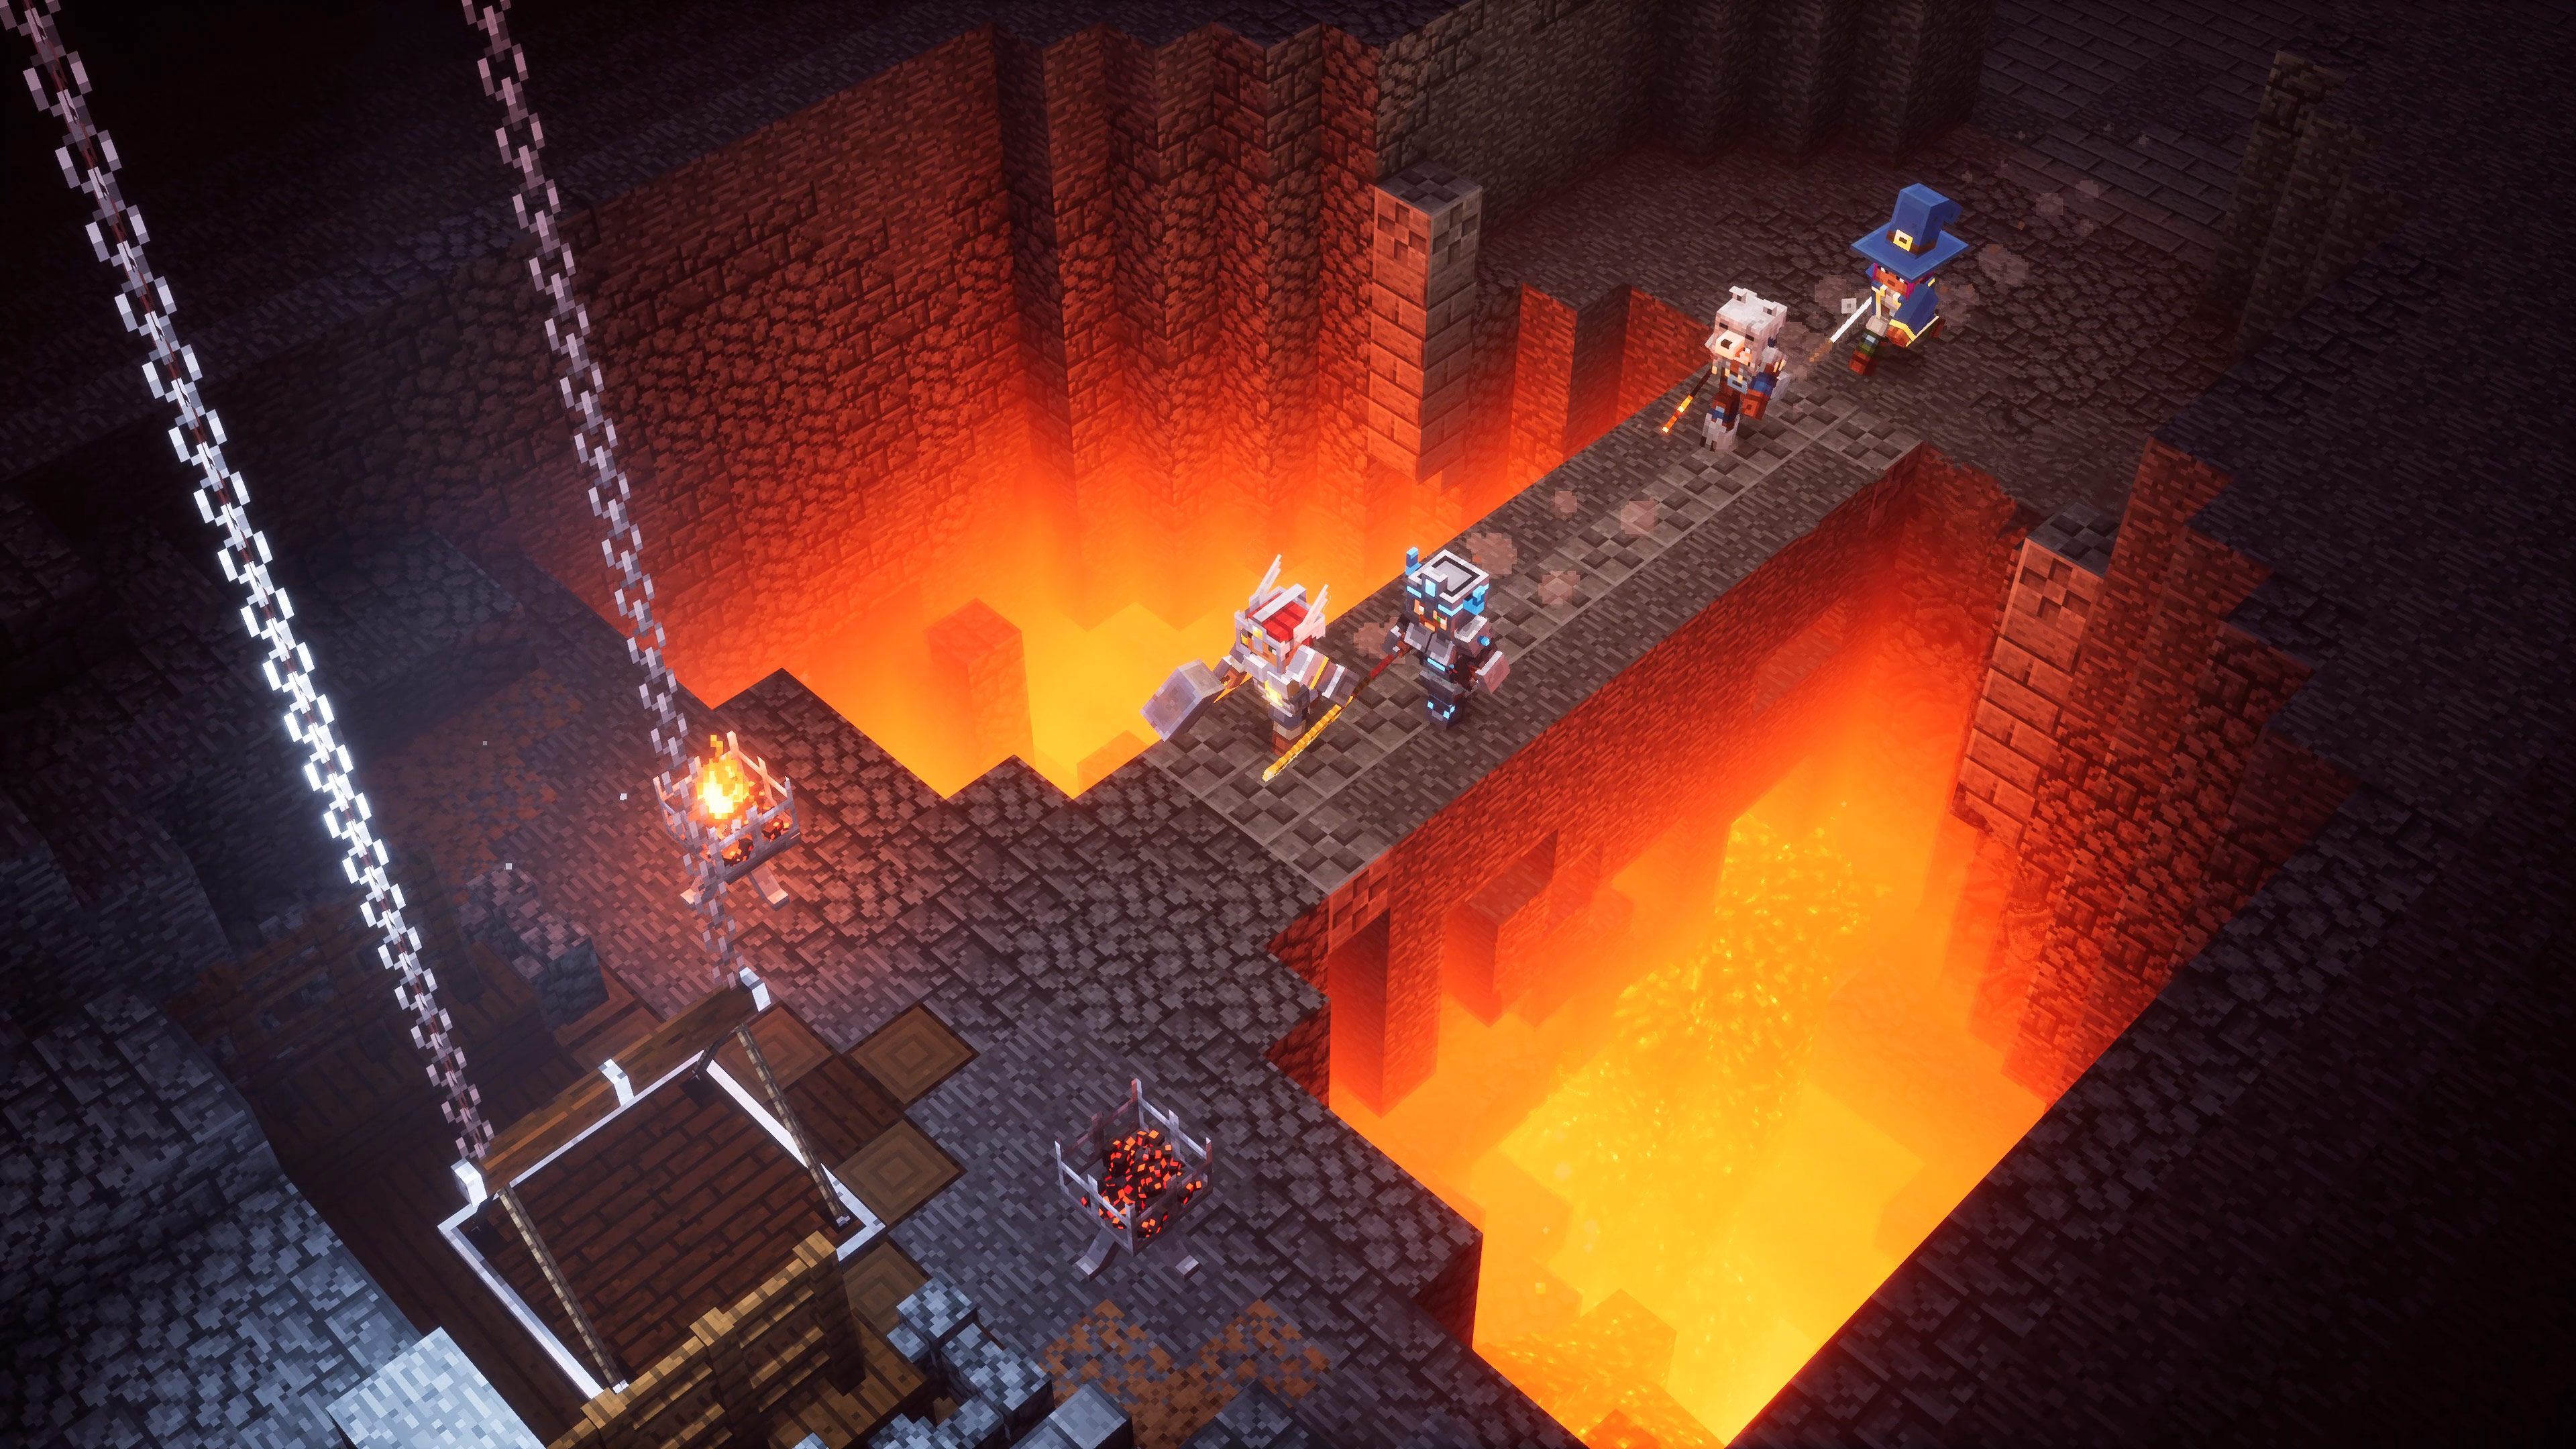 Dungeon crawlers crossing a bridge over lava in Minecraft Dungeons